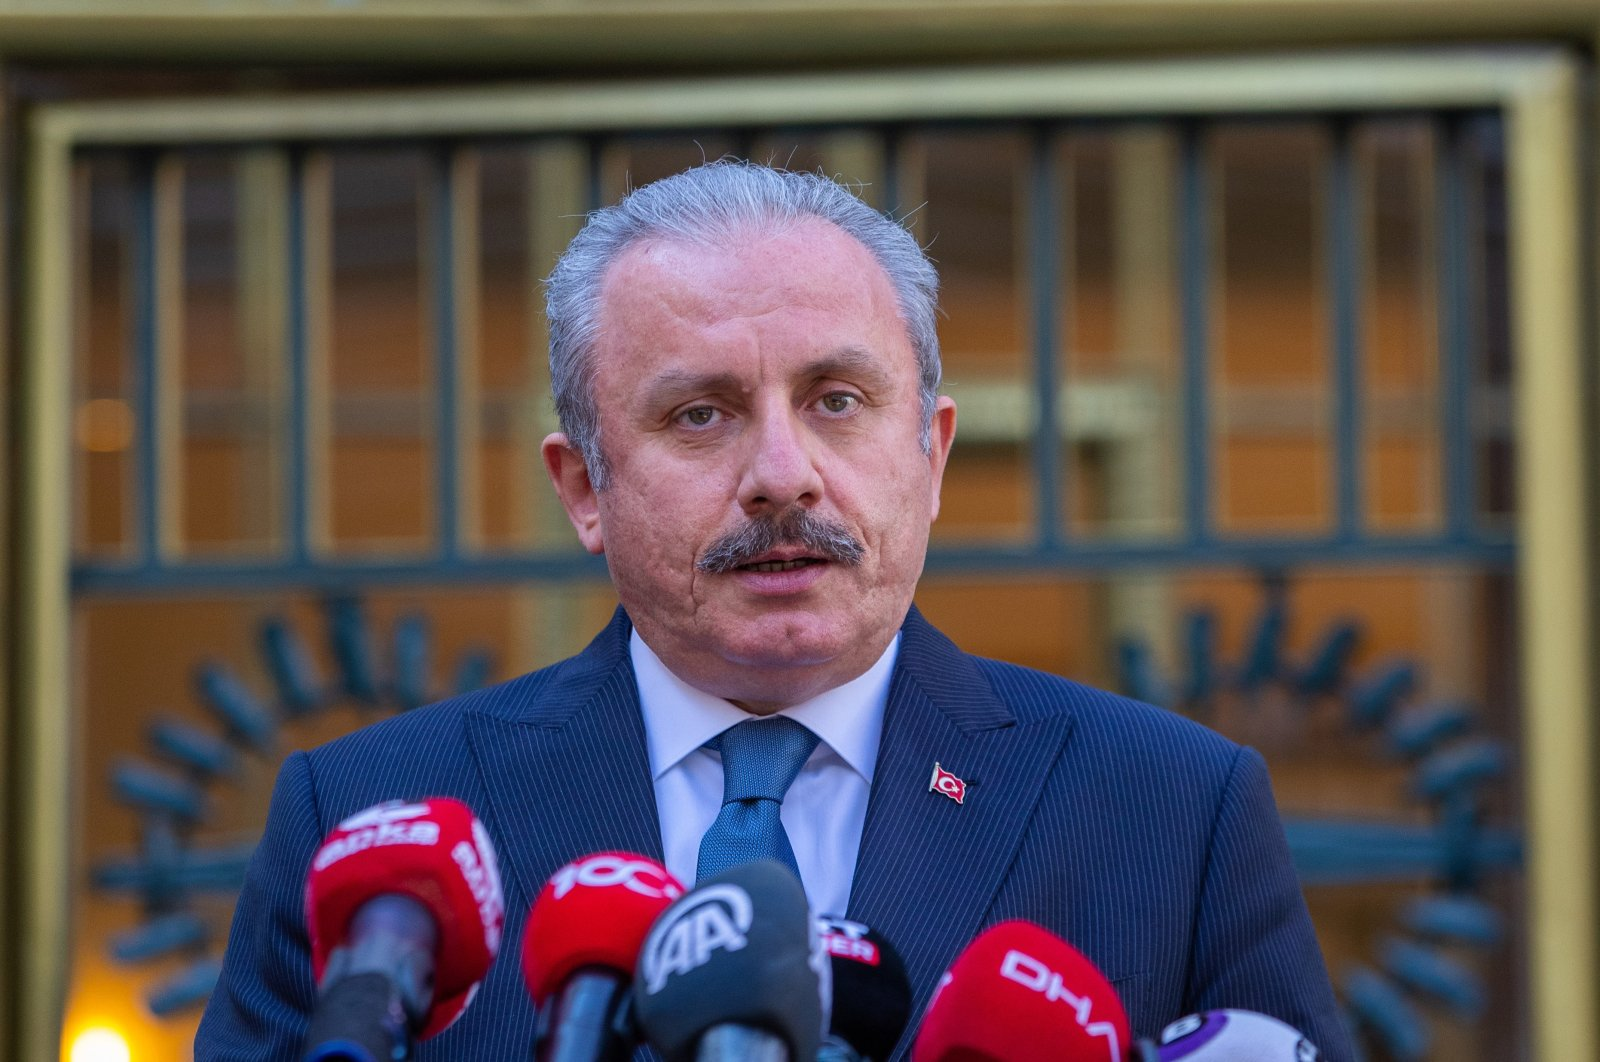 Turkey's Parliament Speaker Mustafa Şentop speaks to reporters at a news conference in front of the parliament in Ankara, Turkey, April 20, 2021. (Sabah Photo)